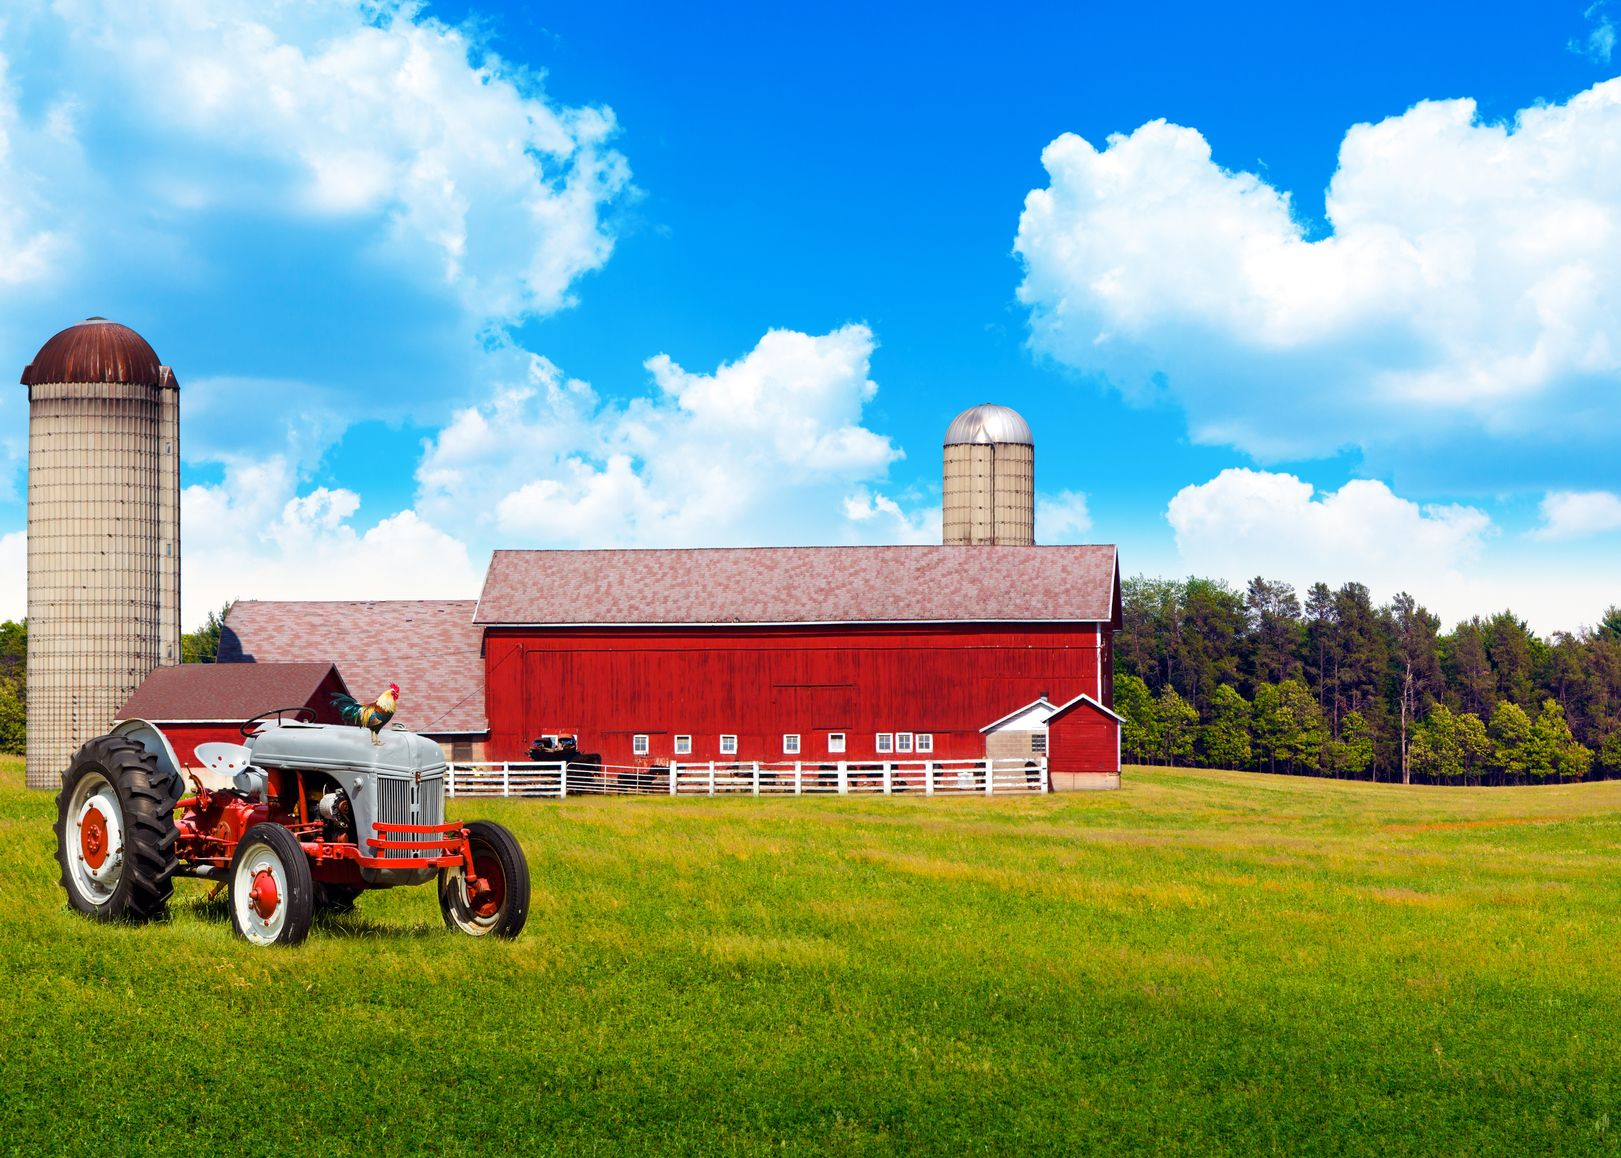 Allen, Frisco, McKinney, TX. Farm & Ranch Insurance